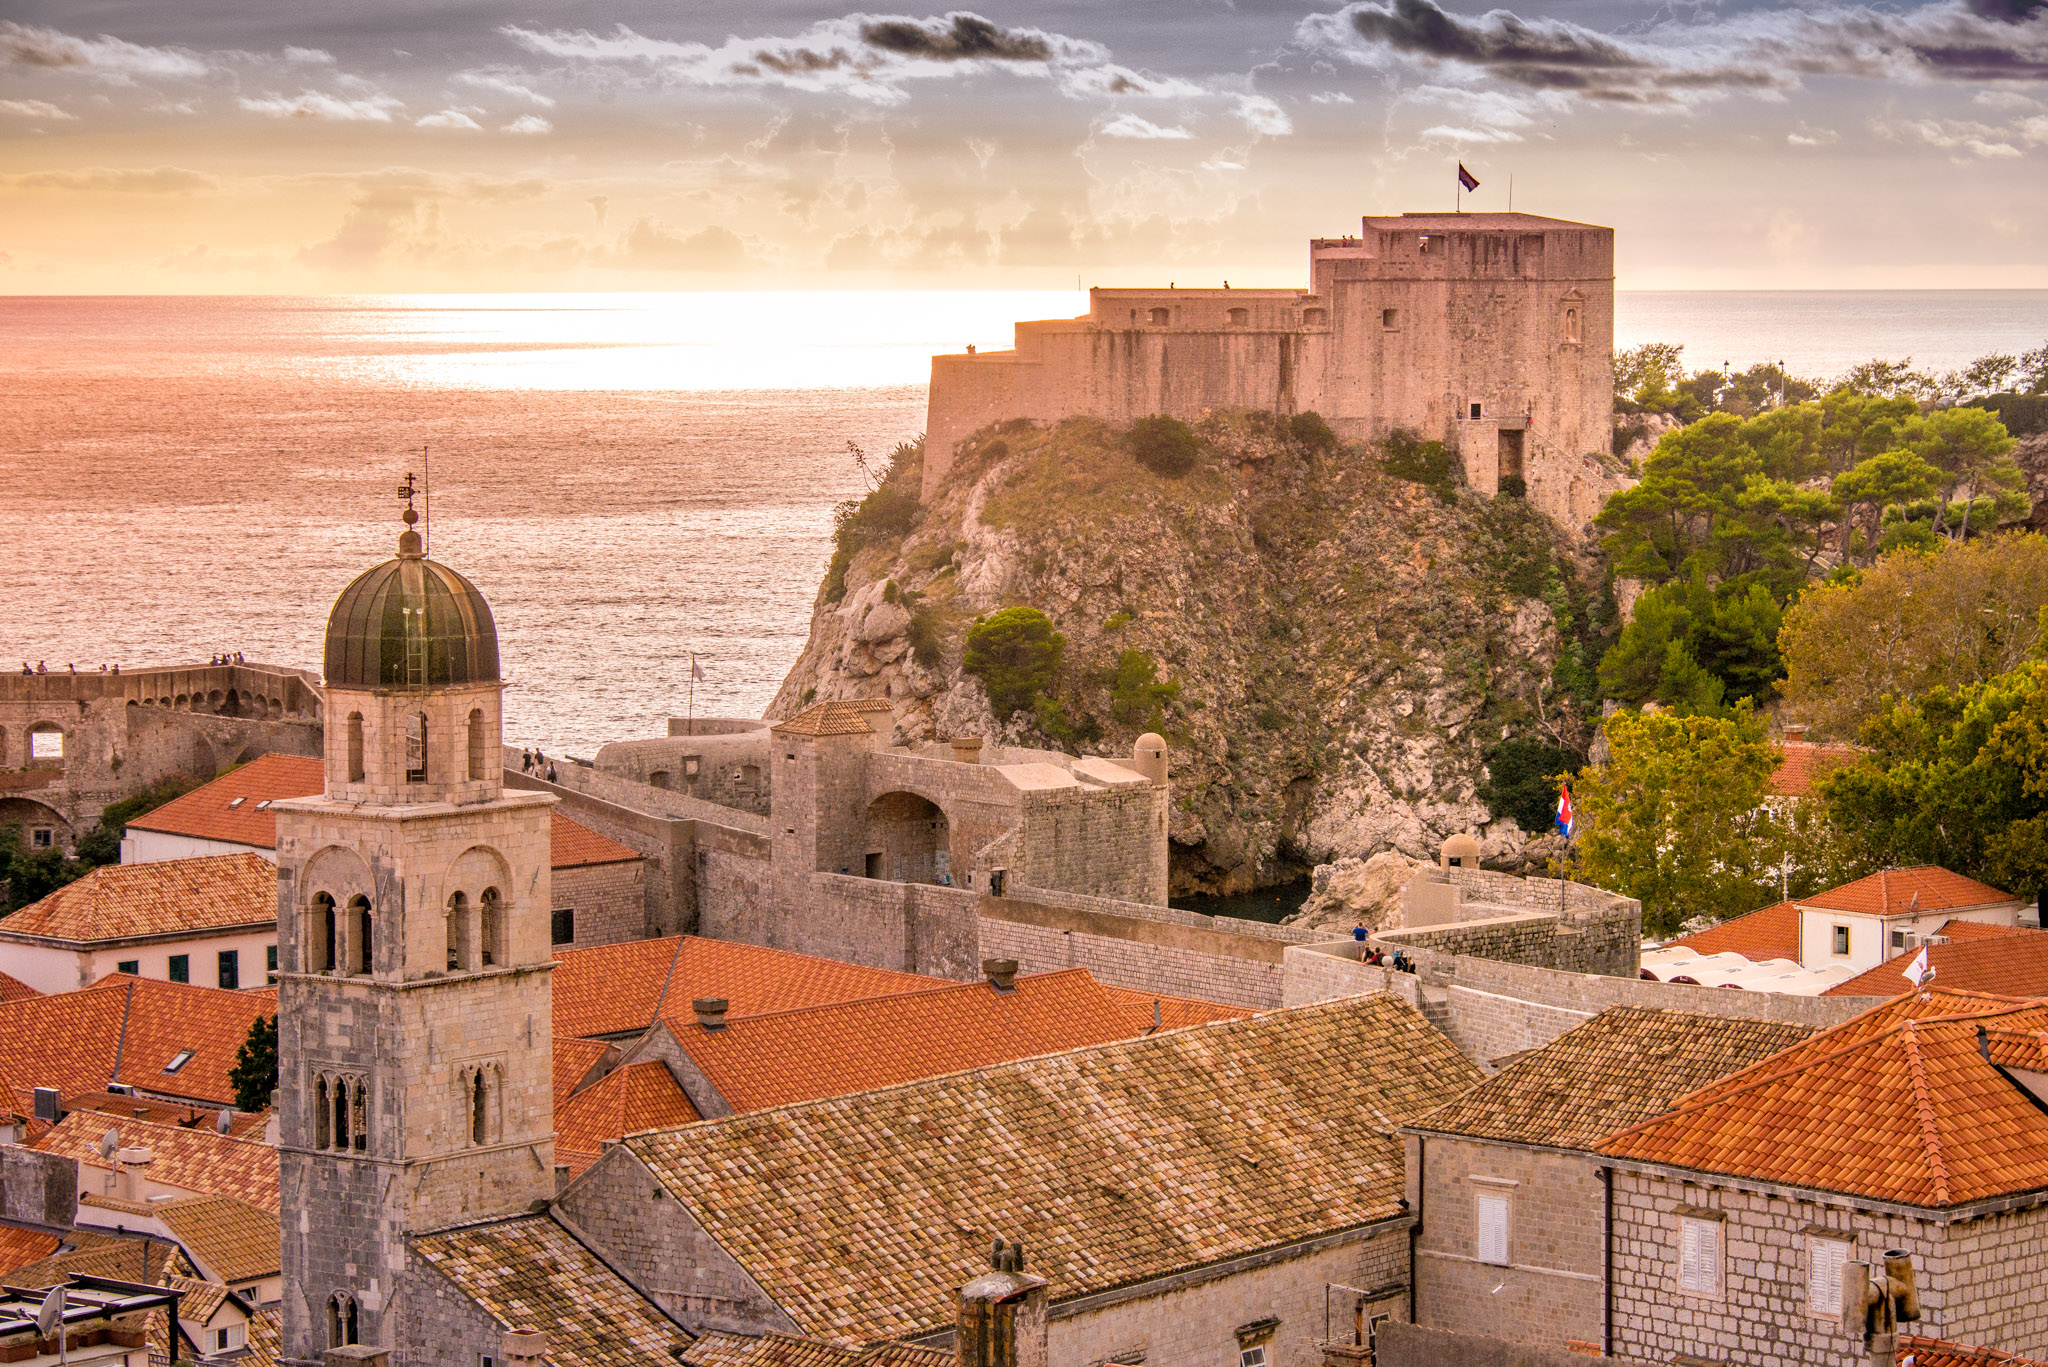 Lovrijenac Fortress and the bell tower of the Franciscan Monastery at sunset as viewed from the Dubrovnik Old Town wall.